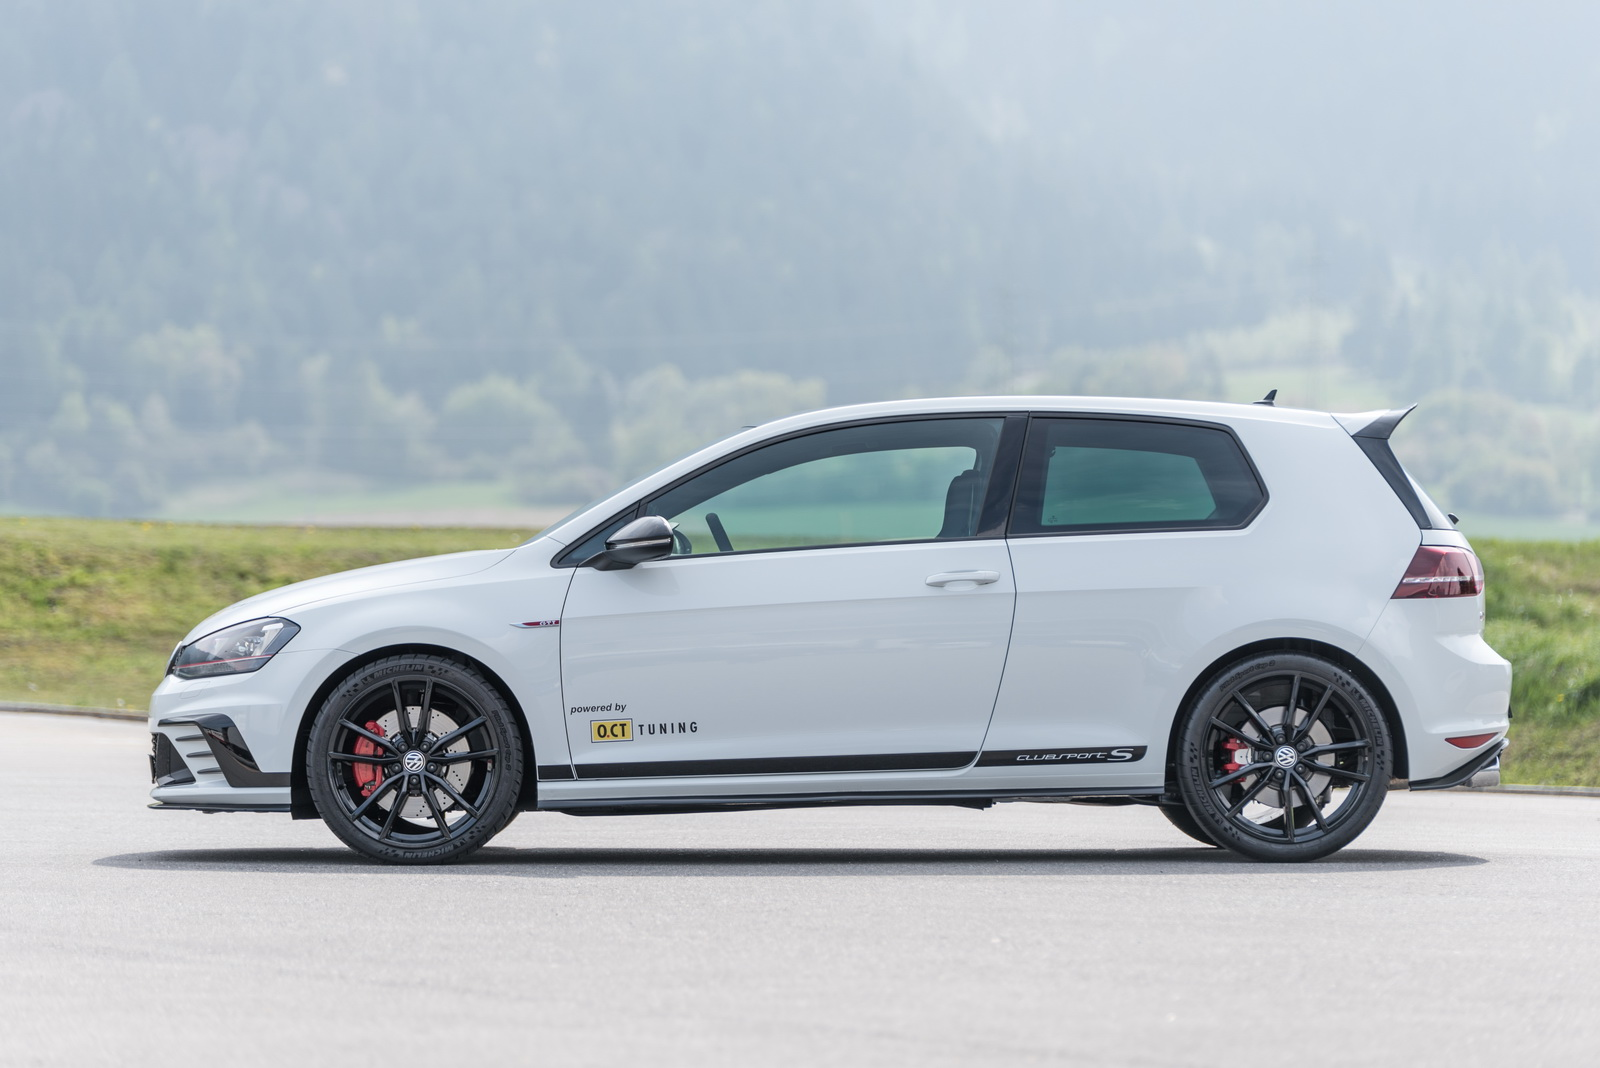 Volkswagen Golf GTI Clubsport S O.CT Tuning